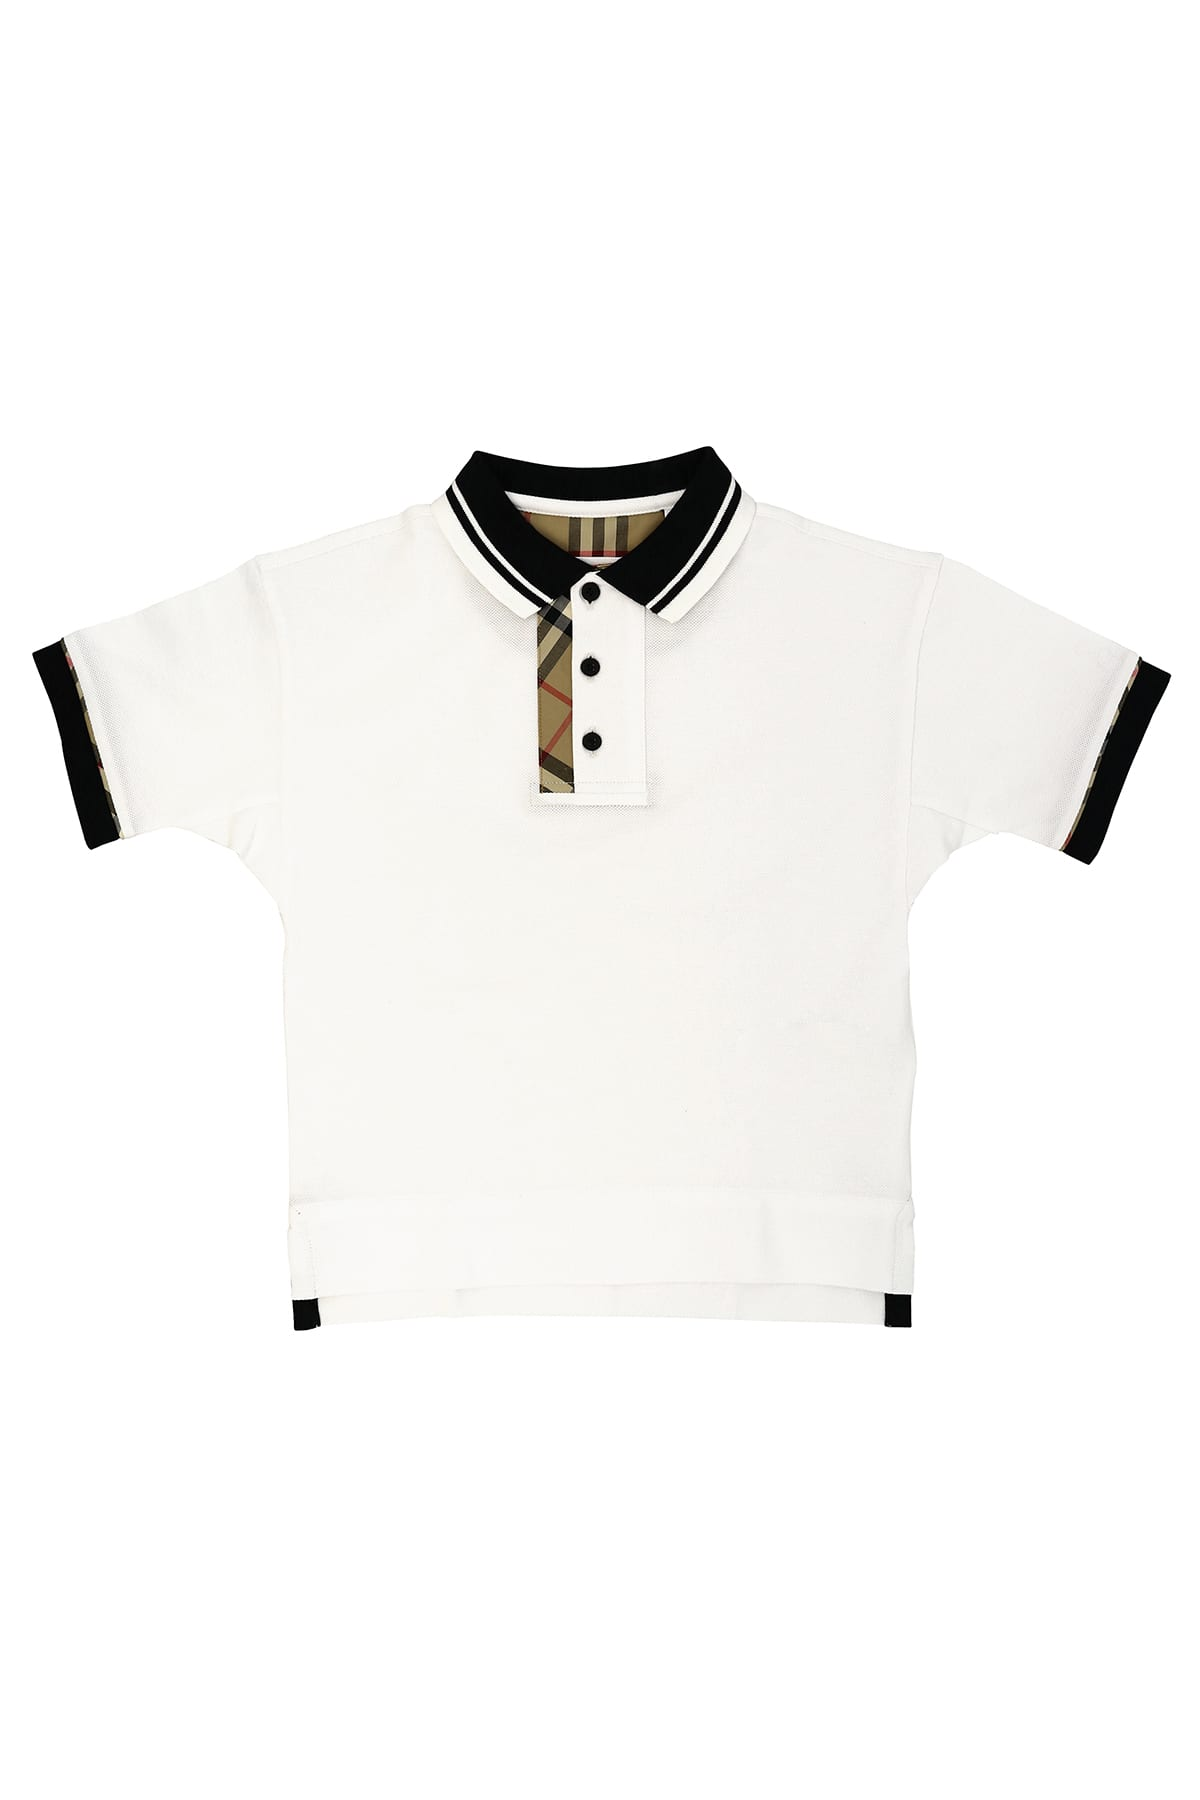 Burberry Kids' Vintage Check Polo T-shirt In White